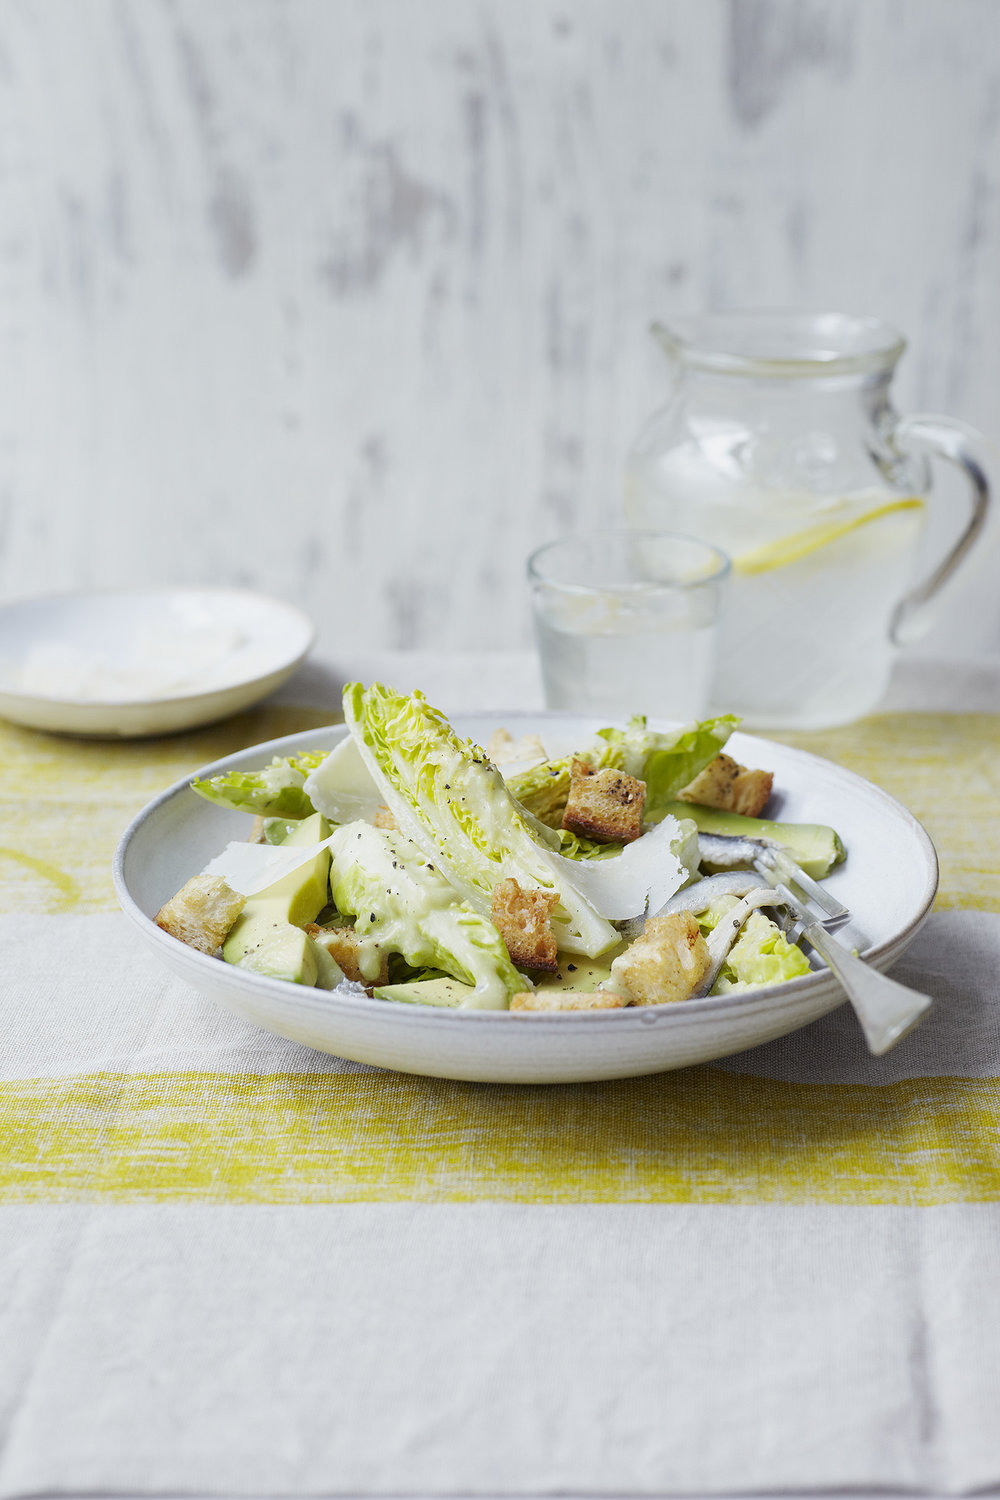 Avo 'Caesar' Salad Photograph Clare Winfield, Prop Styling Wei Tang (from The Goodness of Avocado)